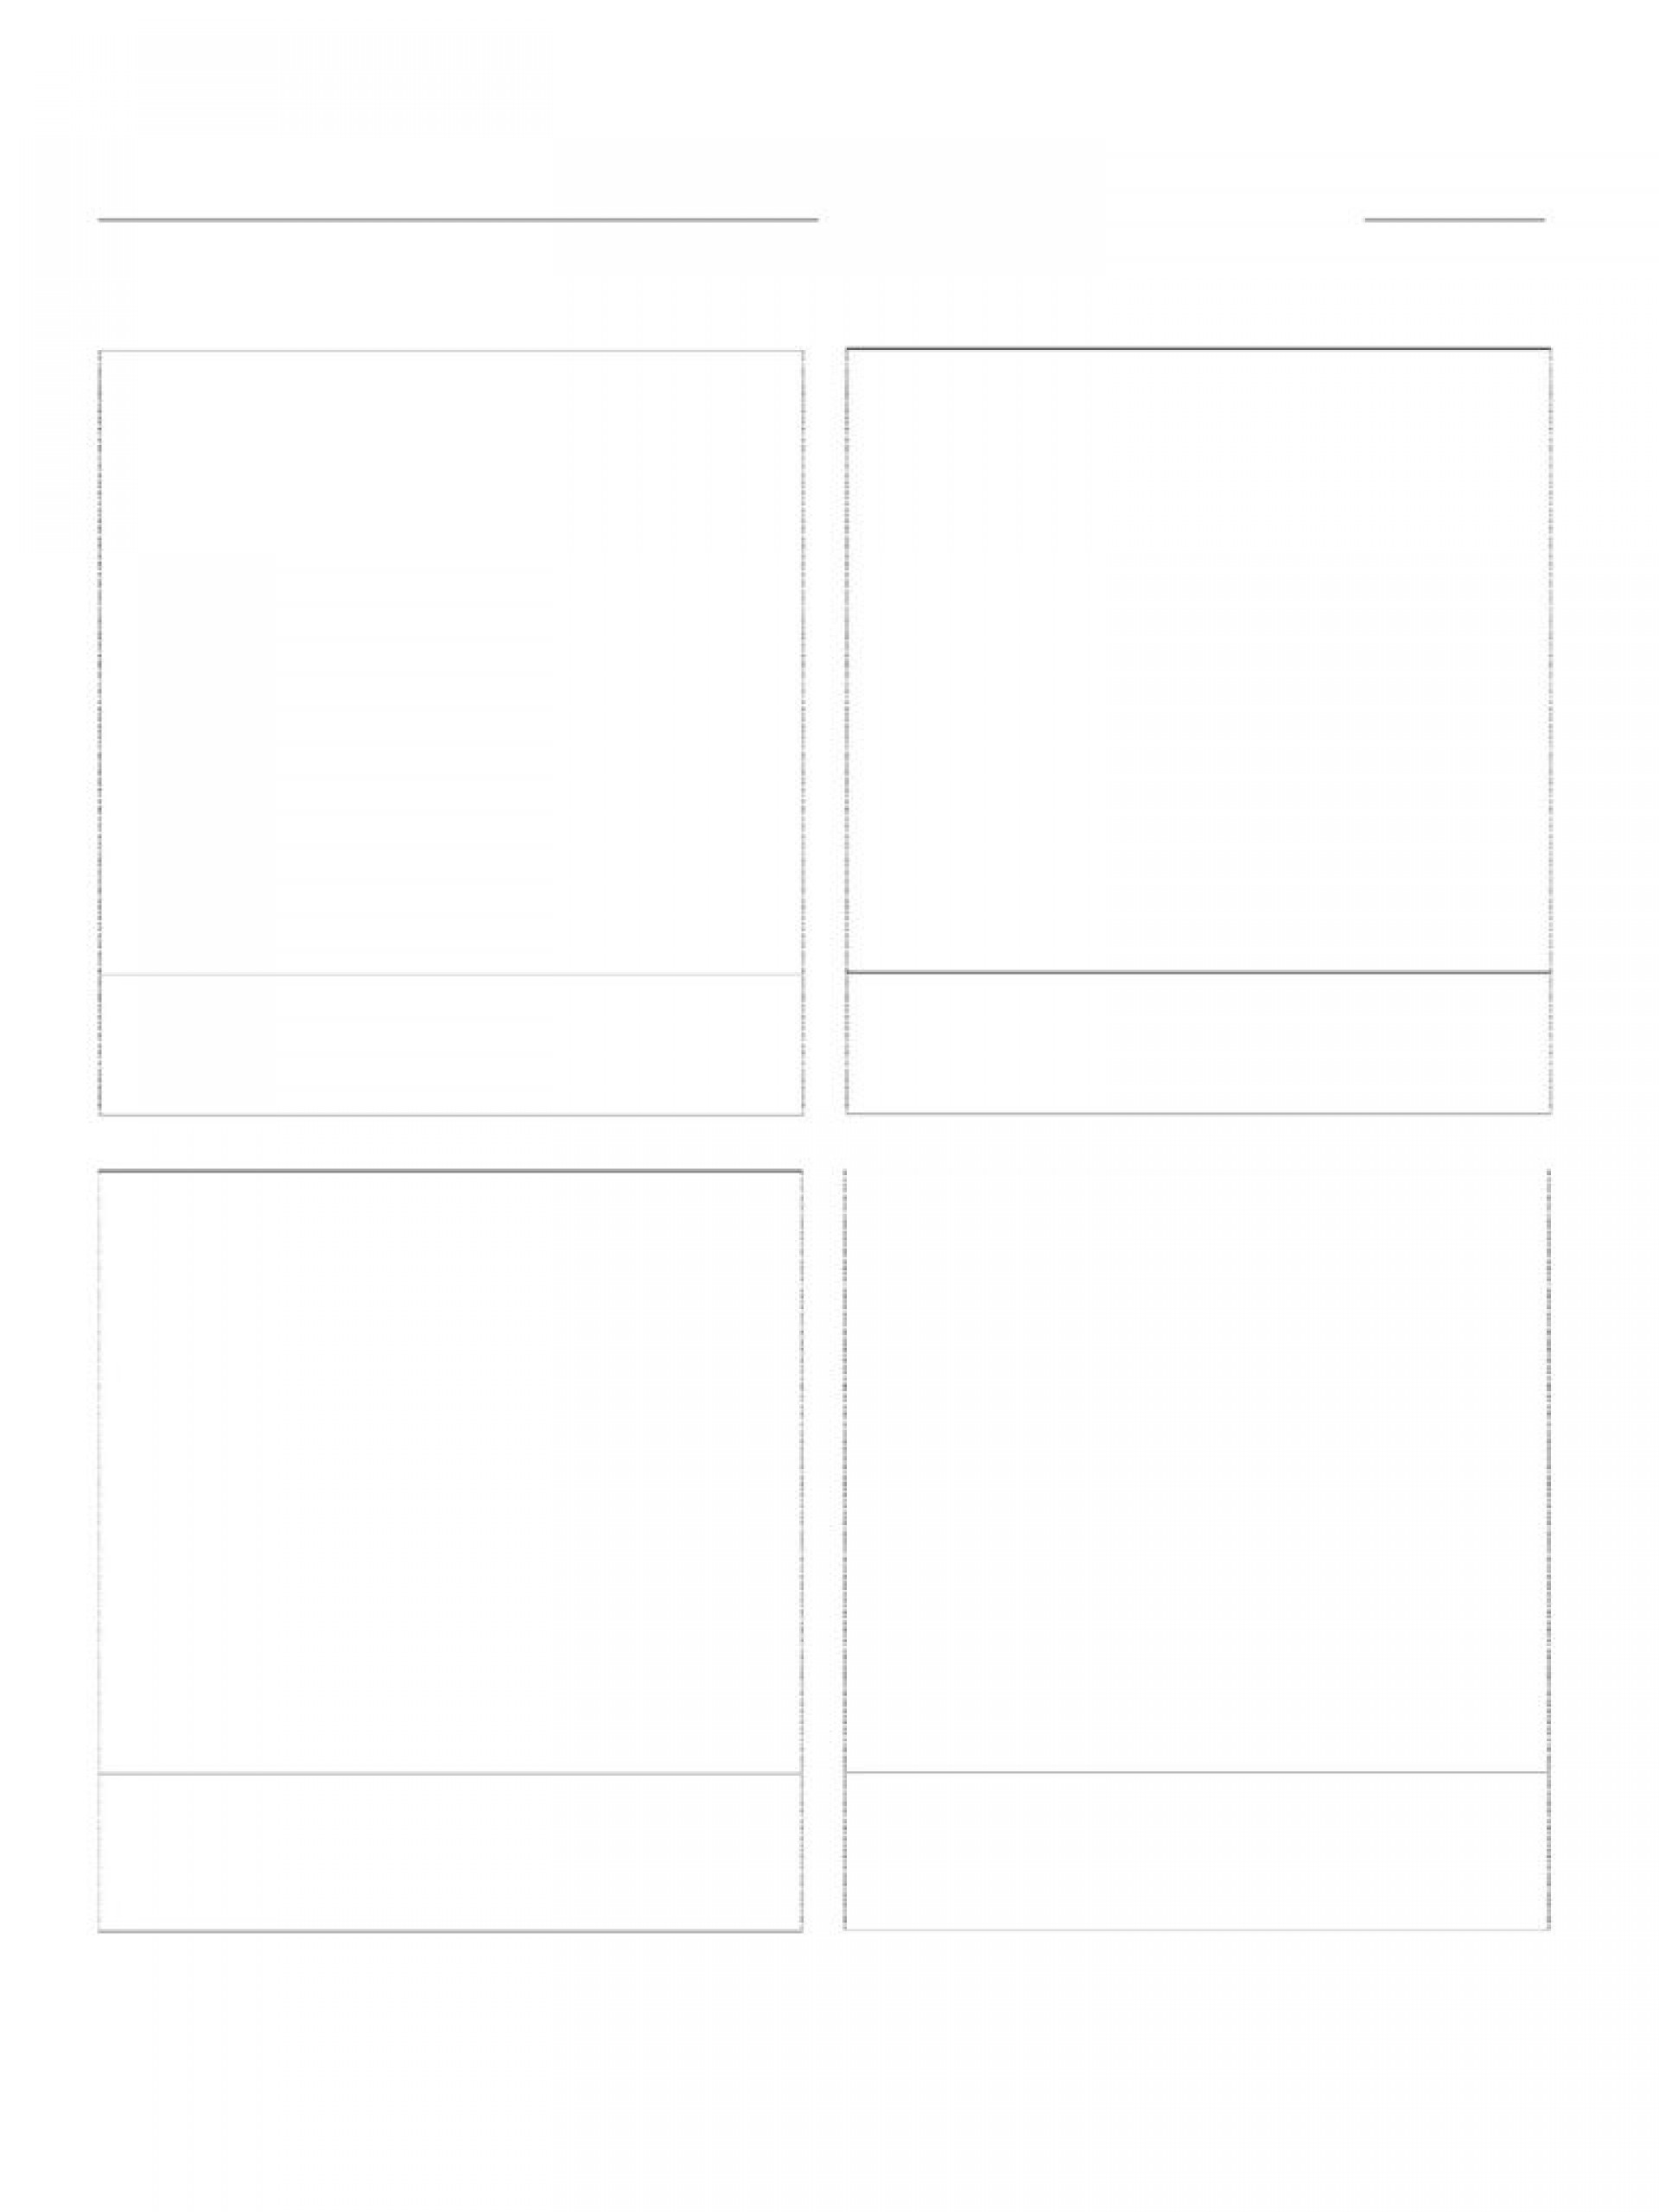 007 Amazing Comic Strip Template Word Image  Doc For Microsoft Document1920